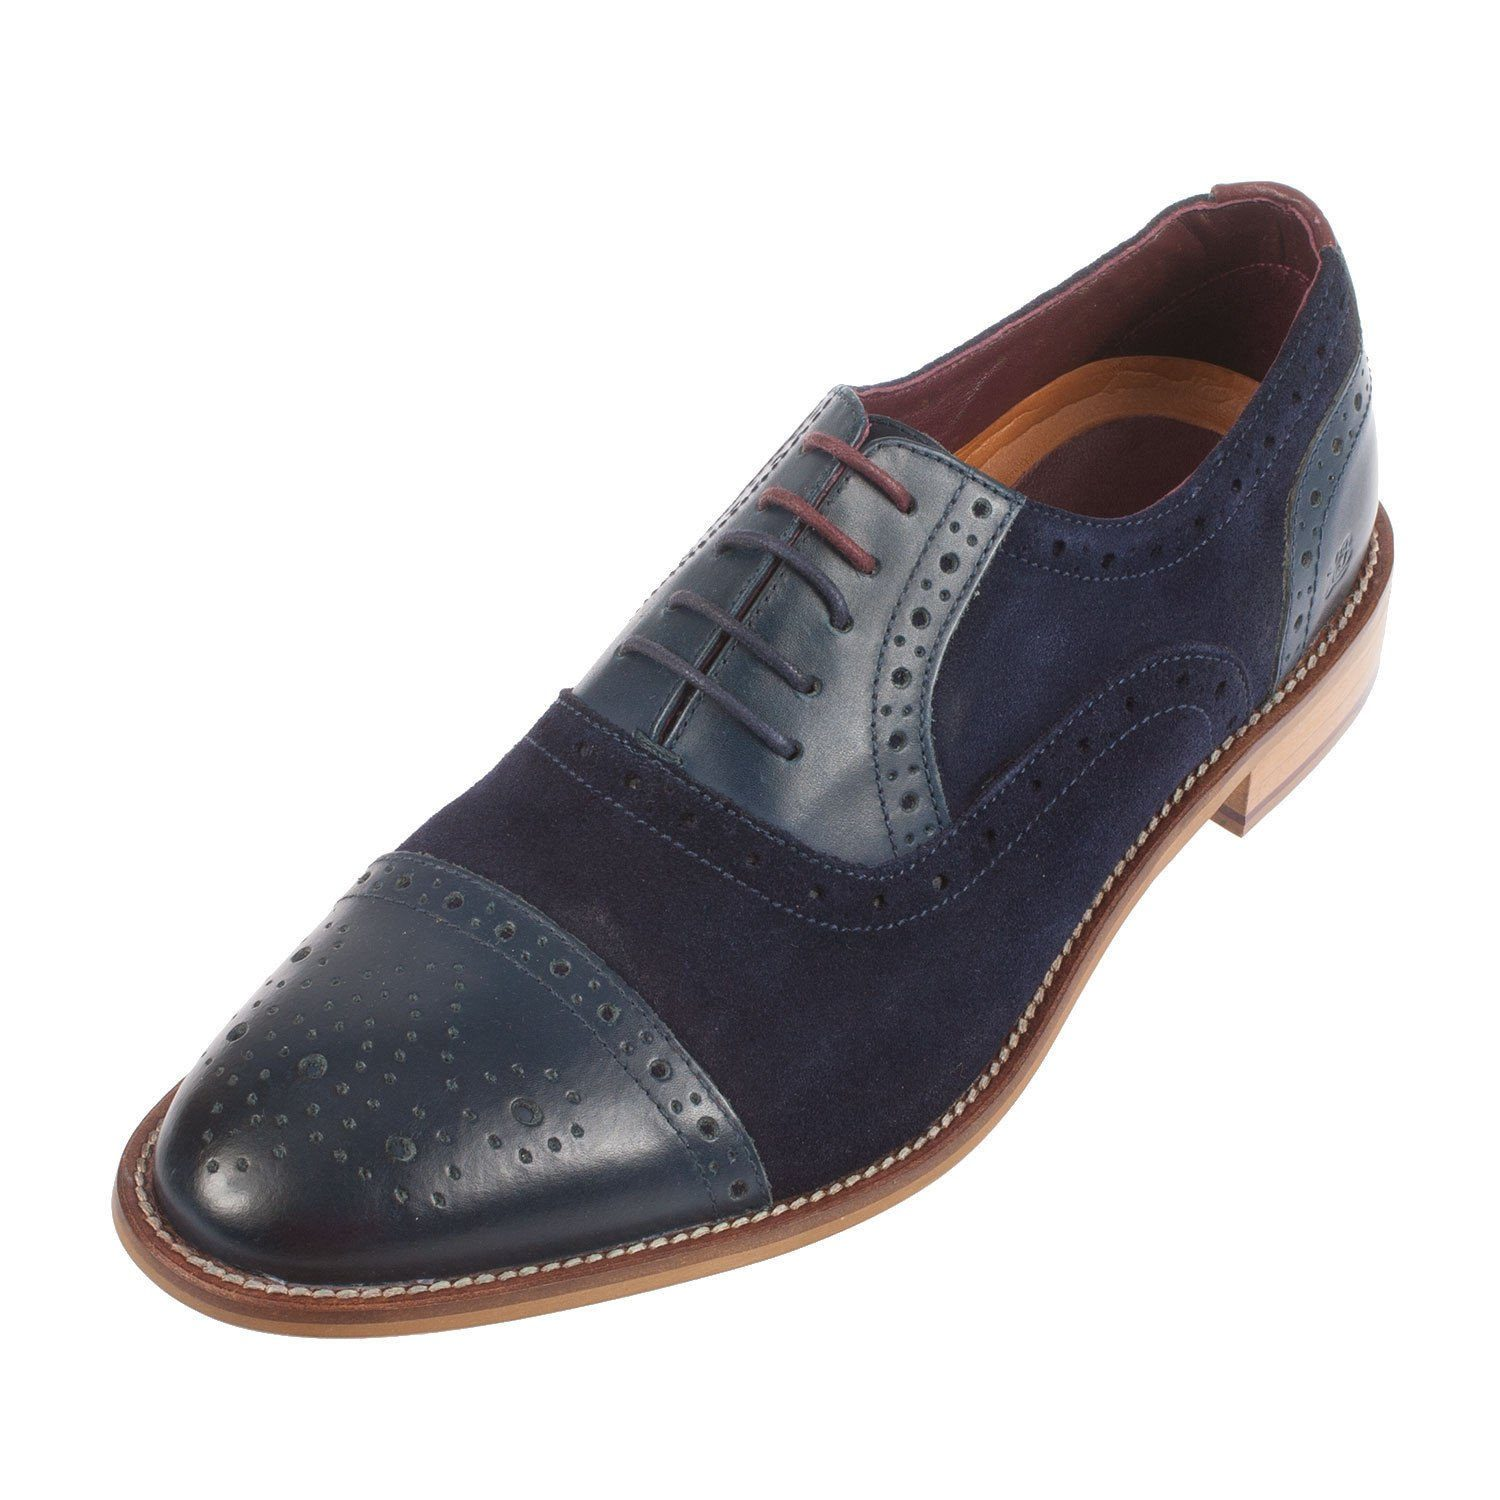 London Brogues Wilson Oxford Leather/Suede Brogue - Leonard Silver